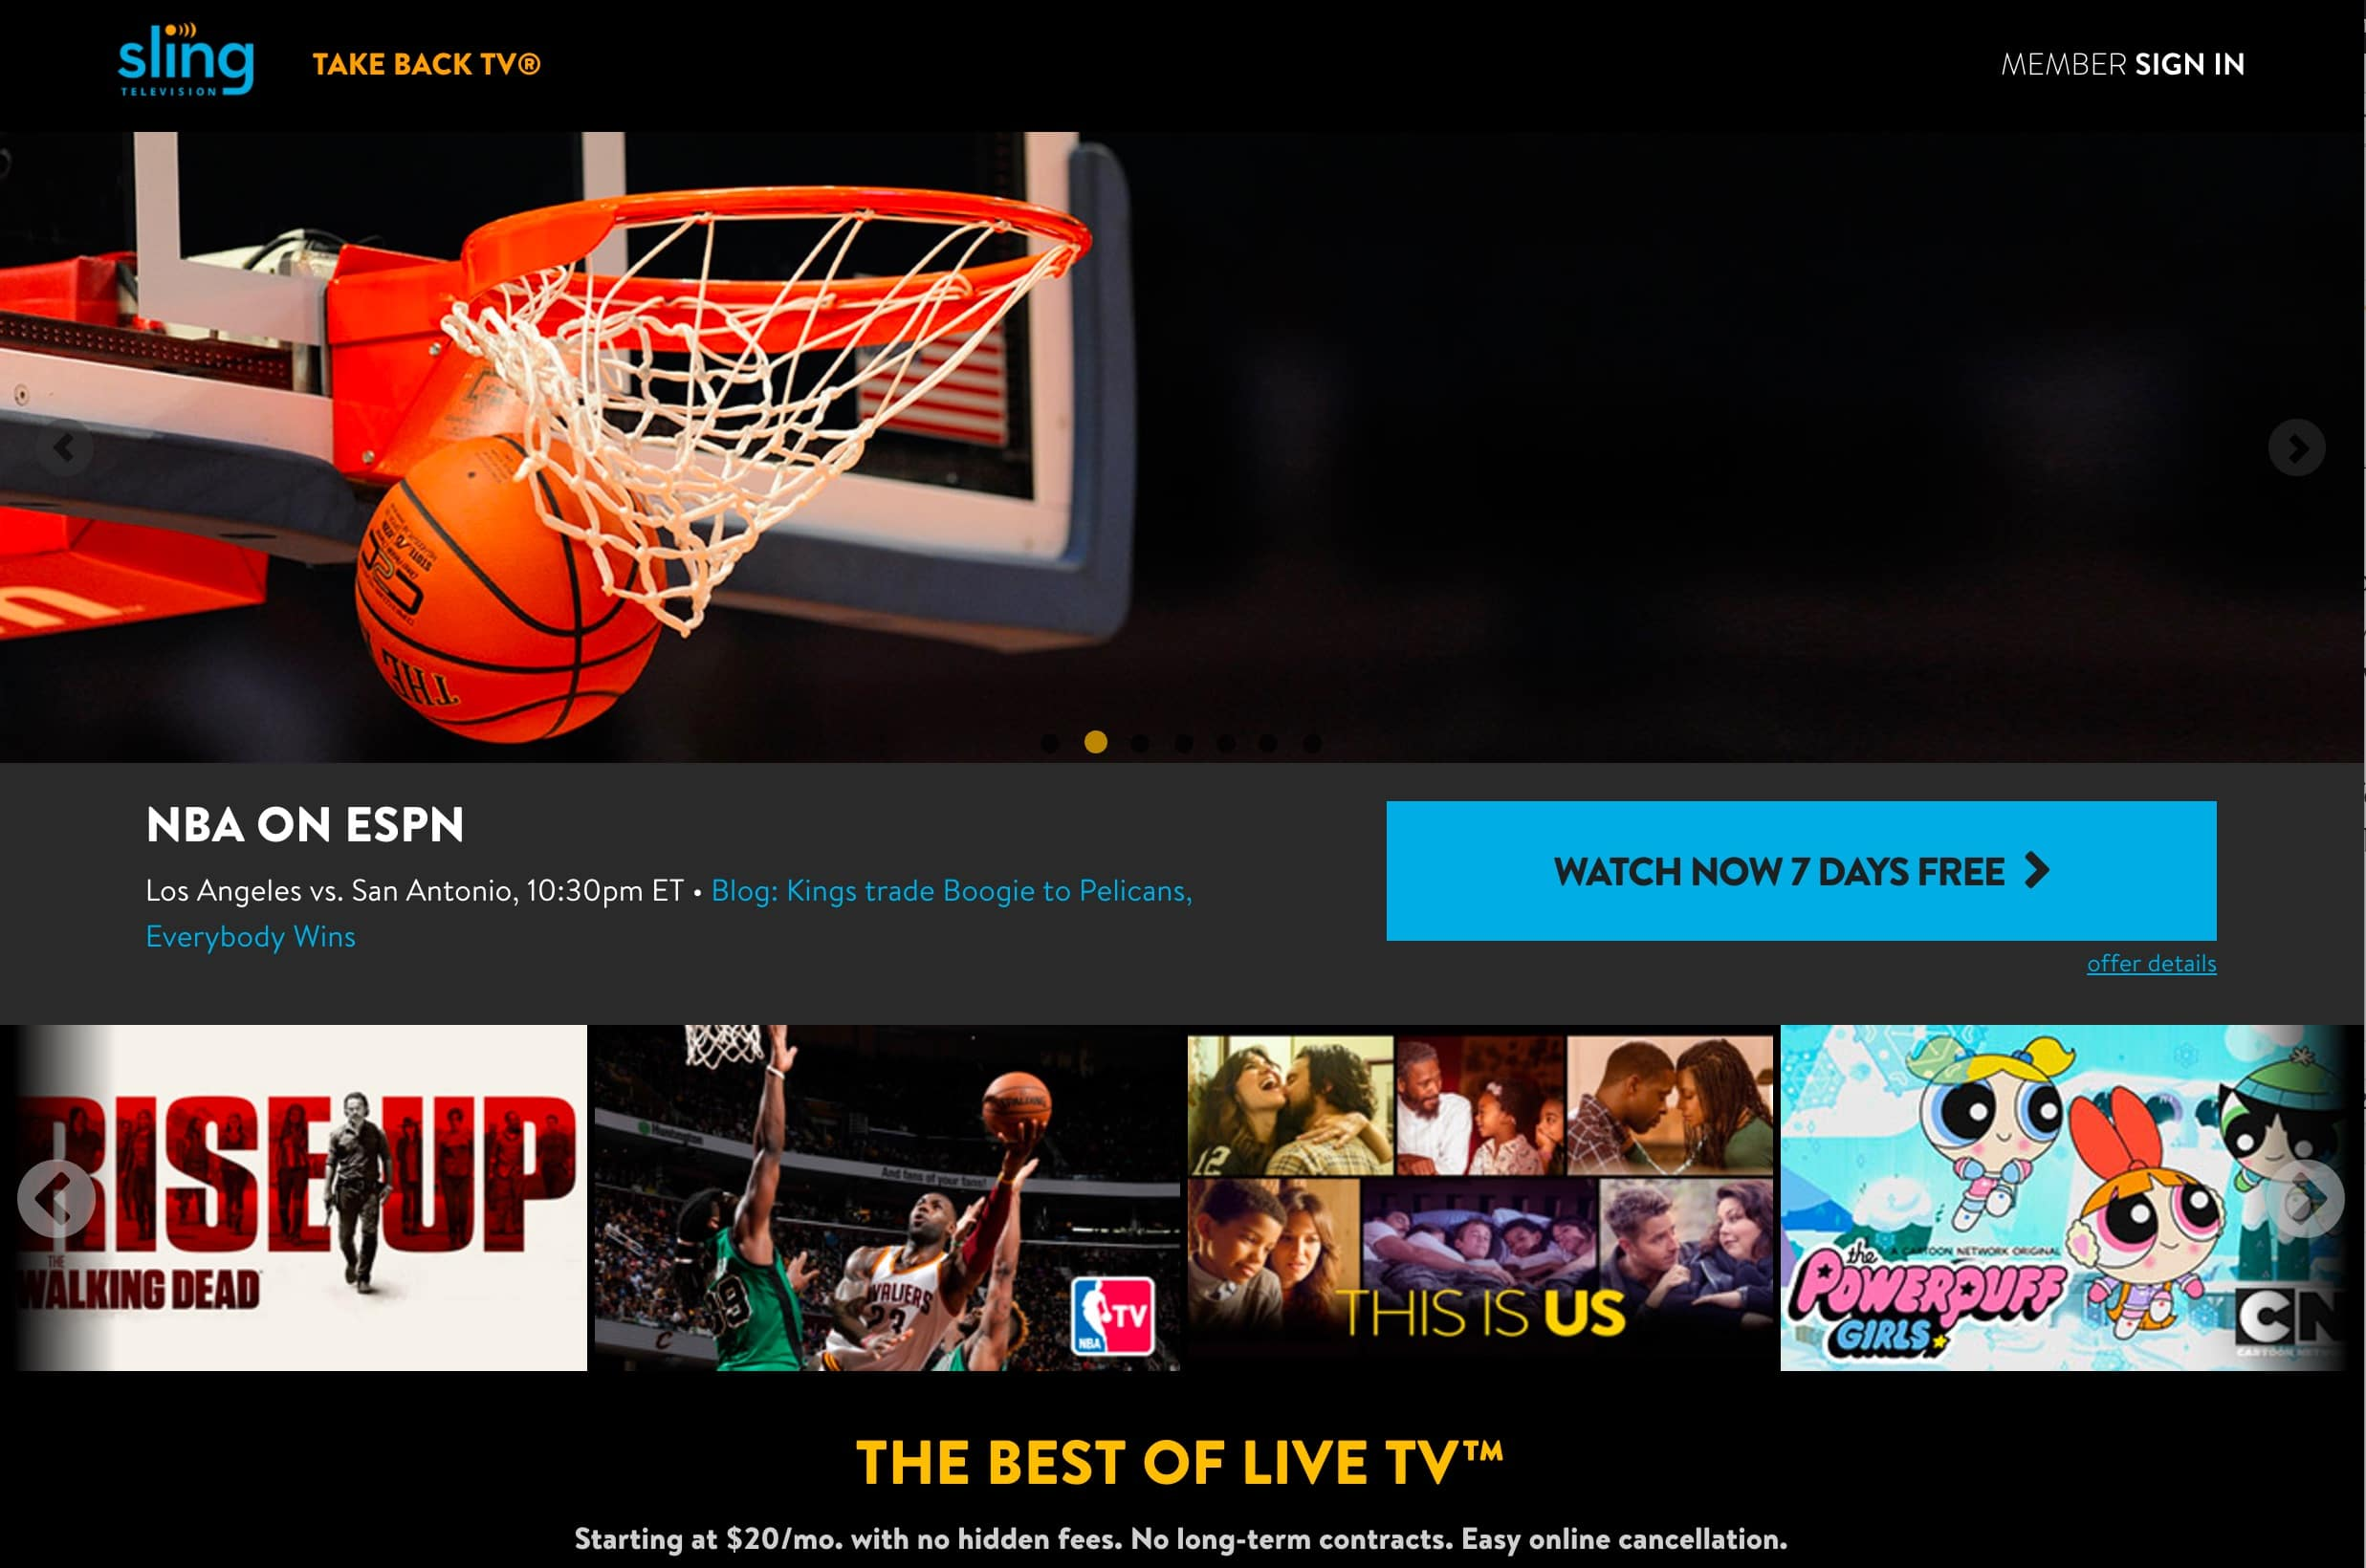 Sling_TV___Watch_Live_TV_Anytime__Anywhere_for__20_mo_and_Edit_Post_‹_—_WordPress (1)